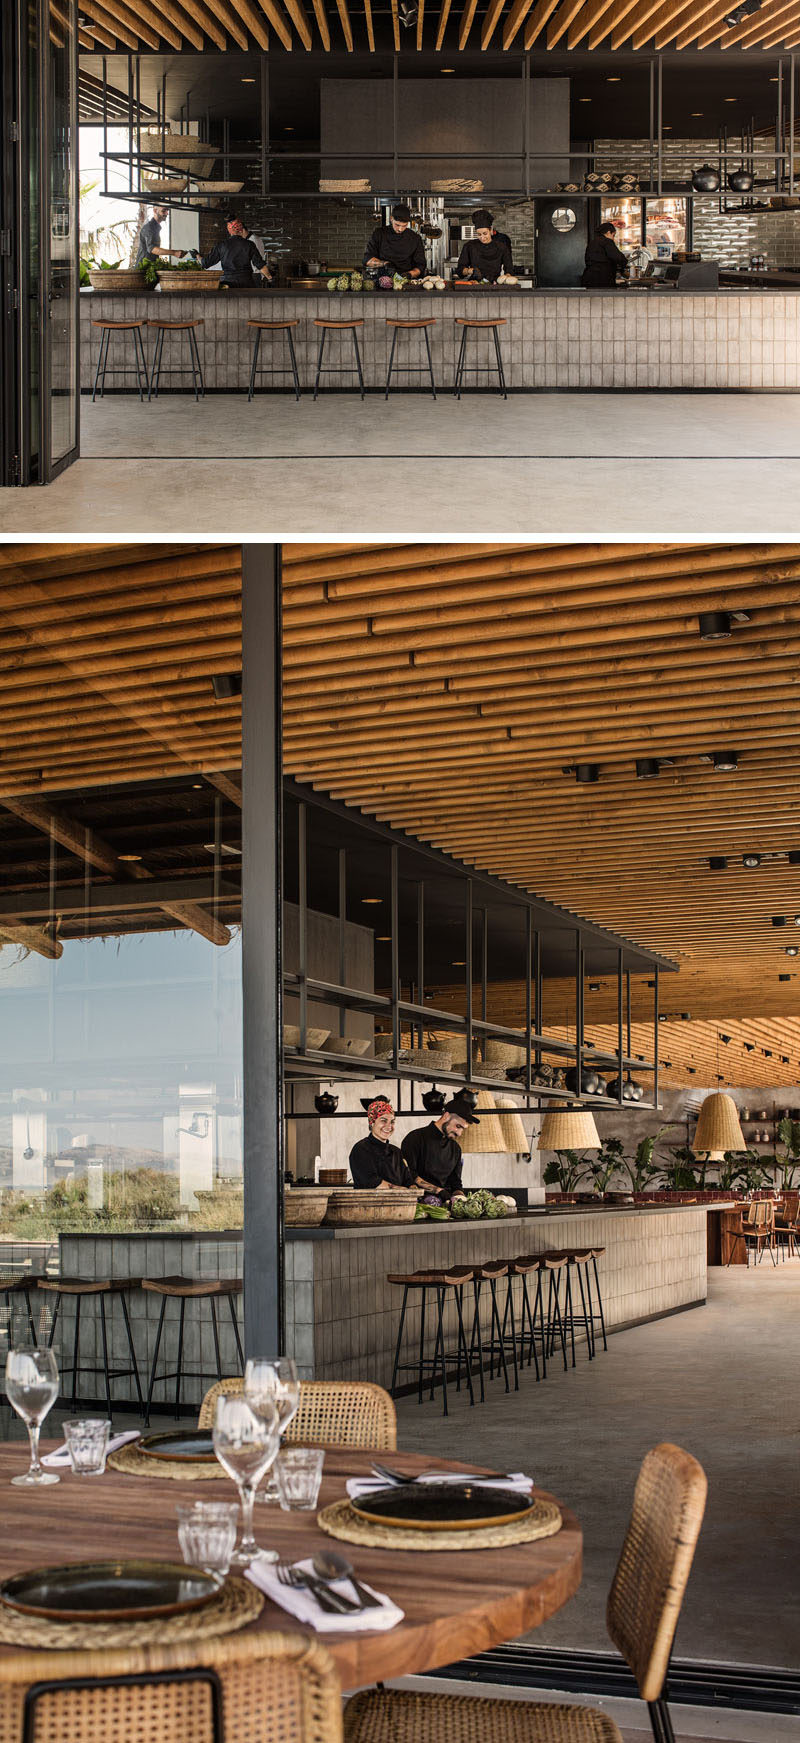 This hotel restaurant features an open-kitchen with black metal shelving that hangs from the ceiling. #Restaurant #RestaurantDesign #Hotel #InteriorDesign #Architecture